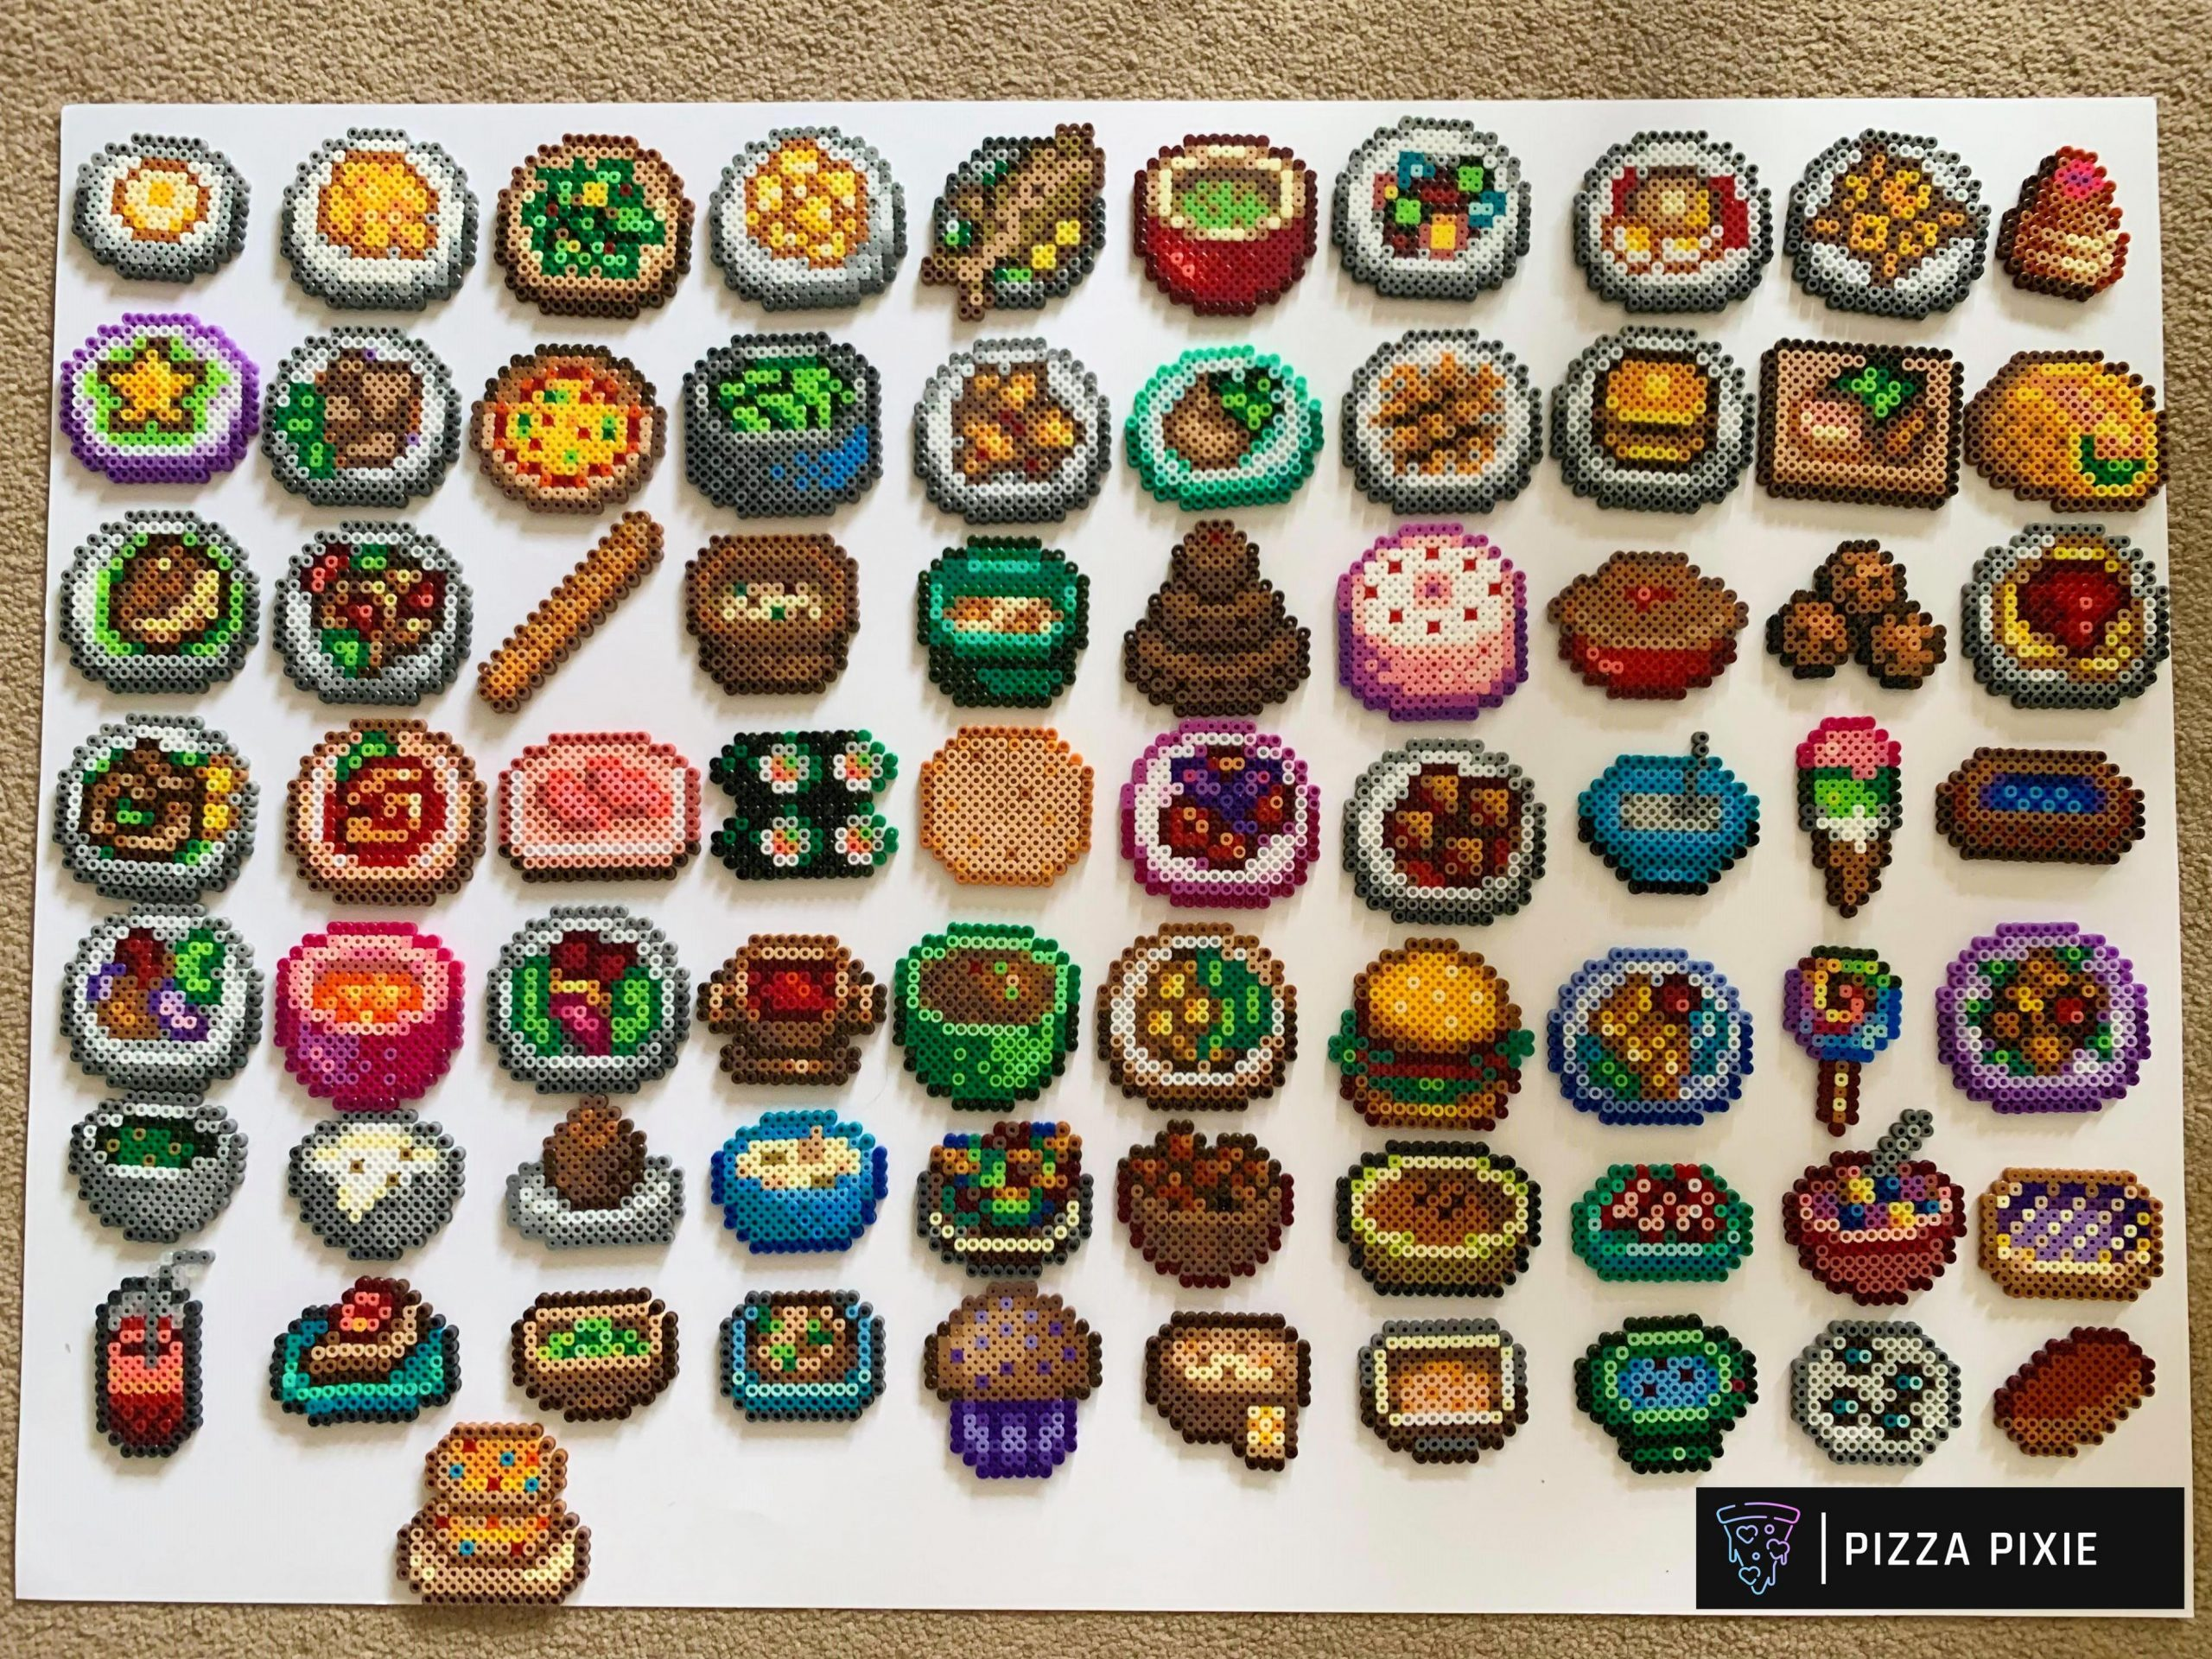 I made every food recipe from Stardew Valley (all 8 of them ..